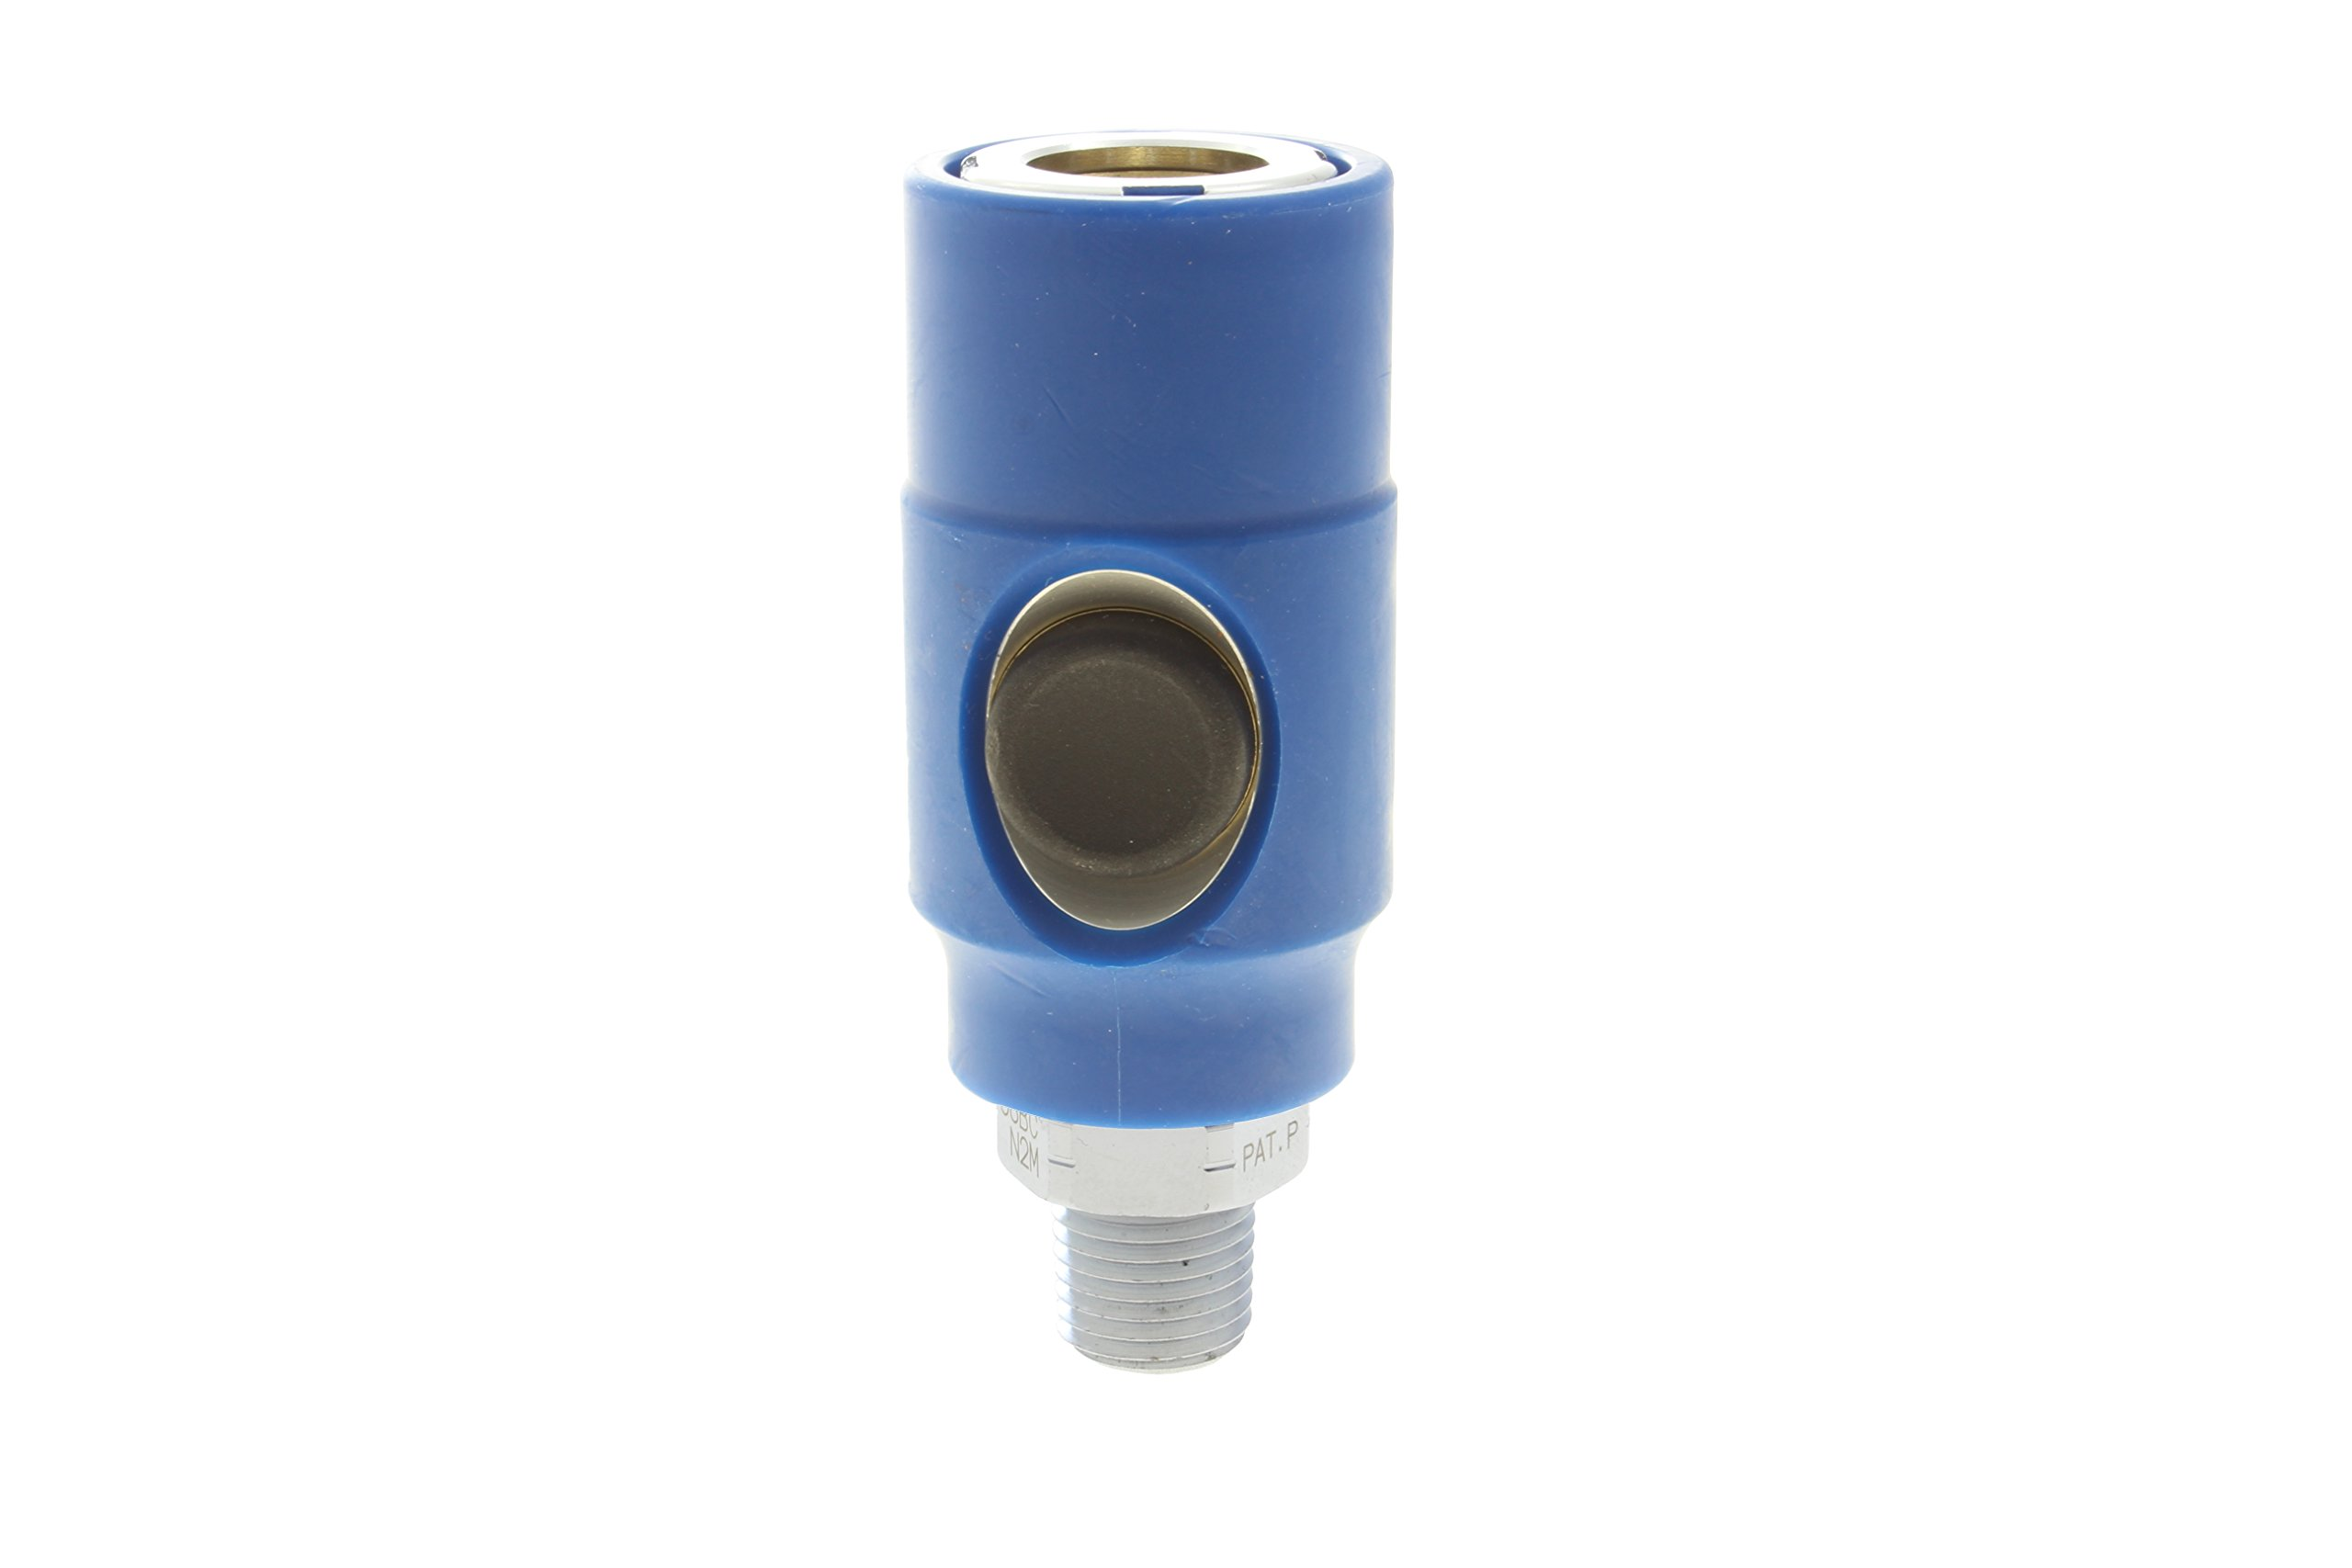 ATP Safety-Touch 38BC-N2M Push Button Safety Coupler, 1/4 Industrial Interchange, 3/8'' Male NPT, 0.250''